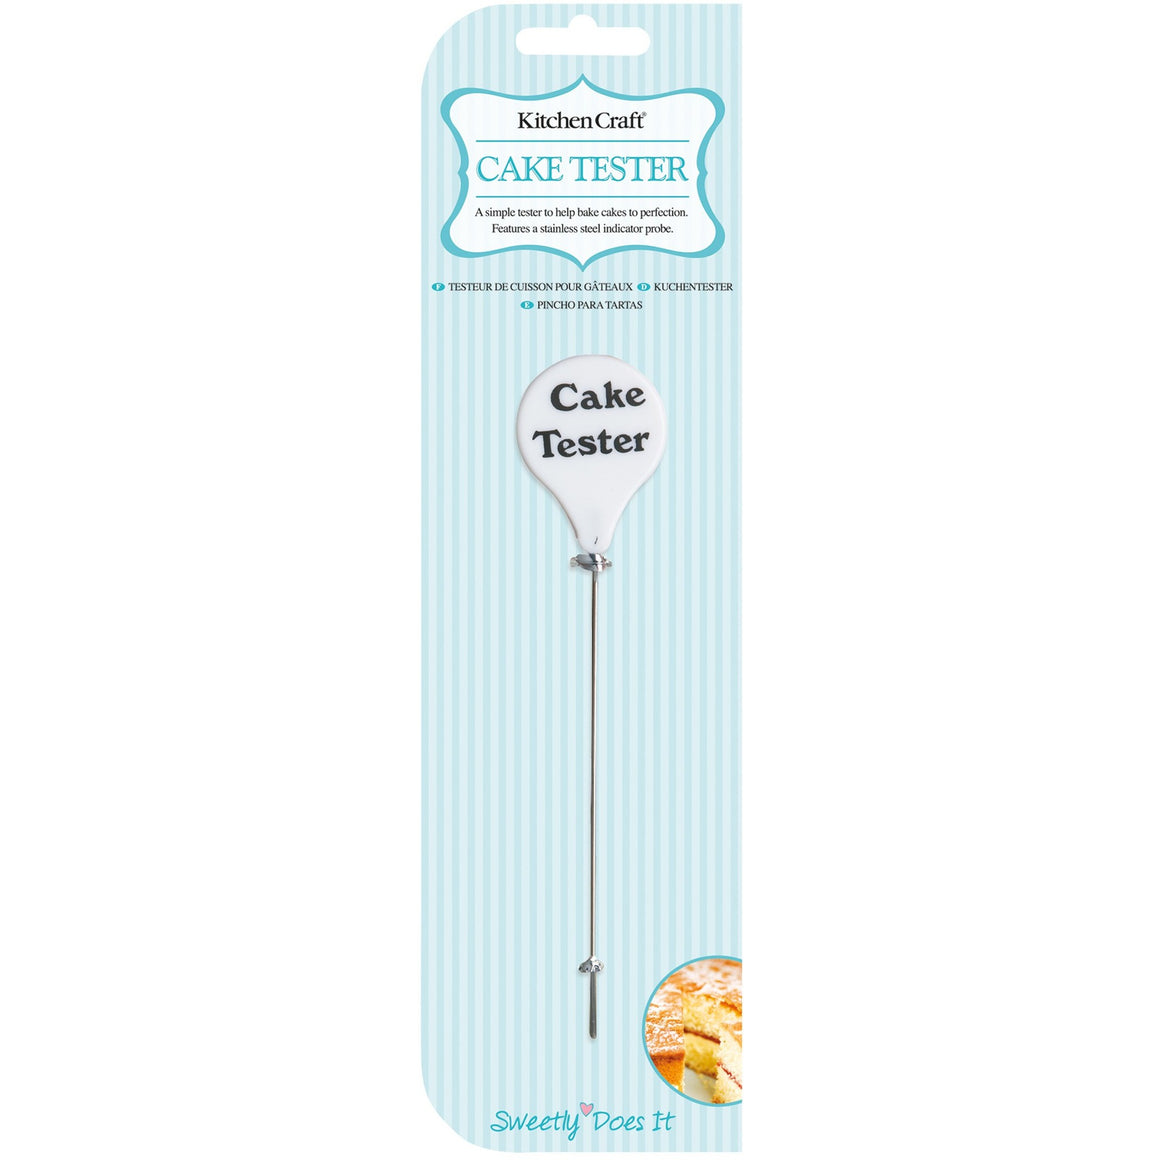 Kitchen Craft Cake Tester